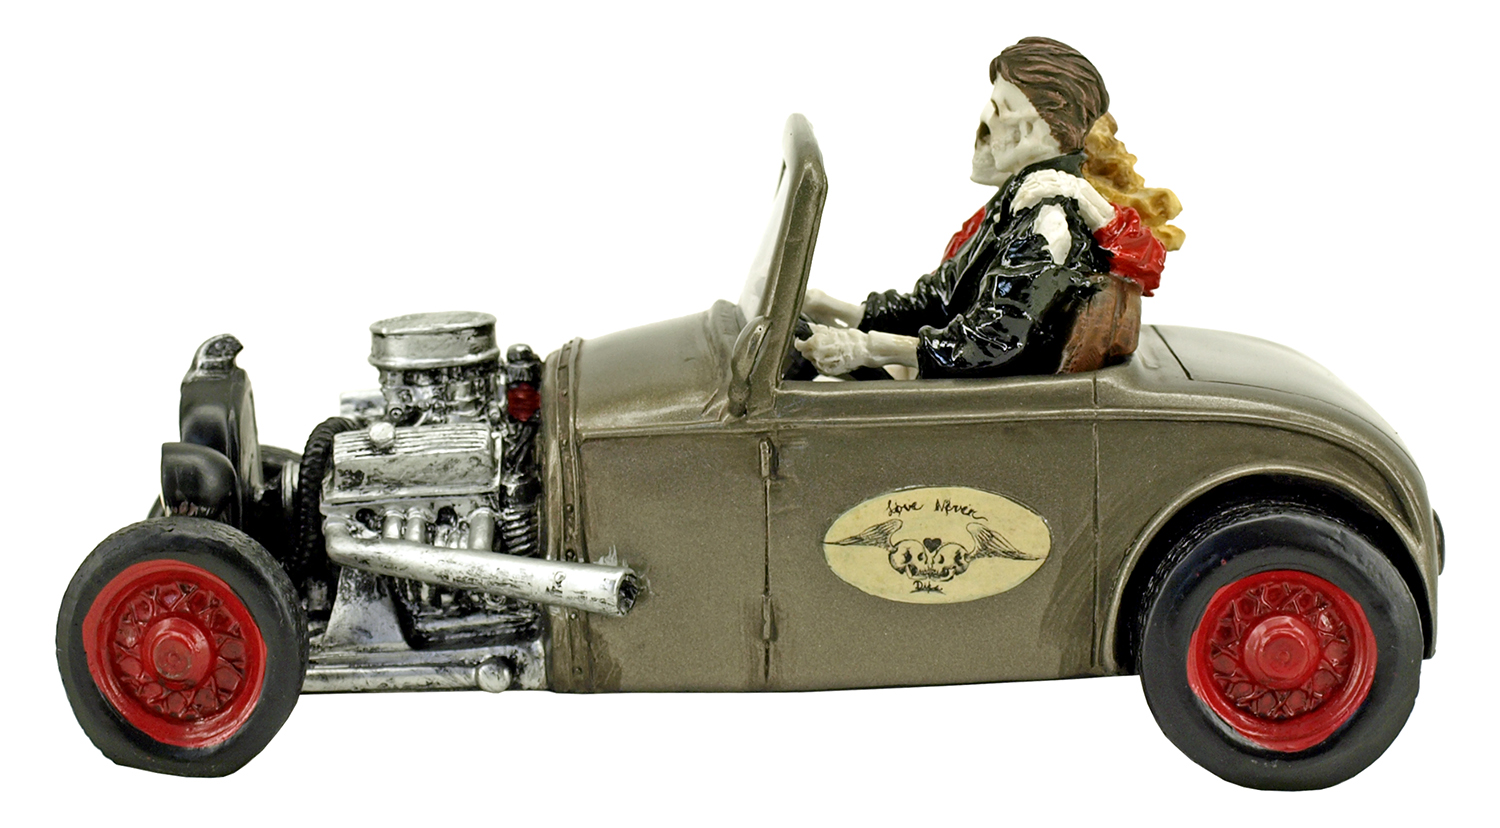 Love Never Dies Skeleton Couple Hot Rod Statue Figurine